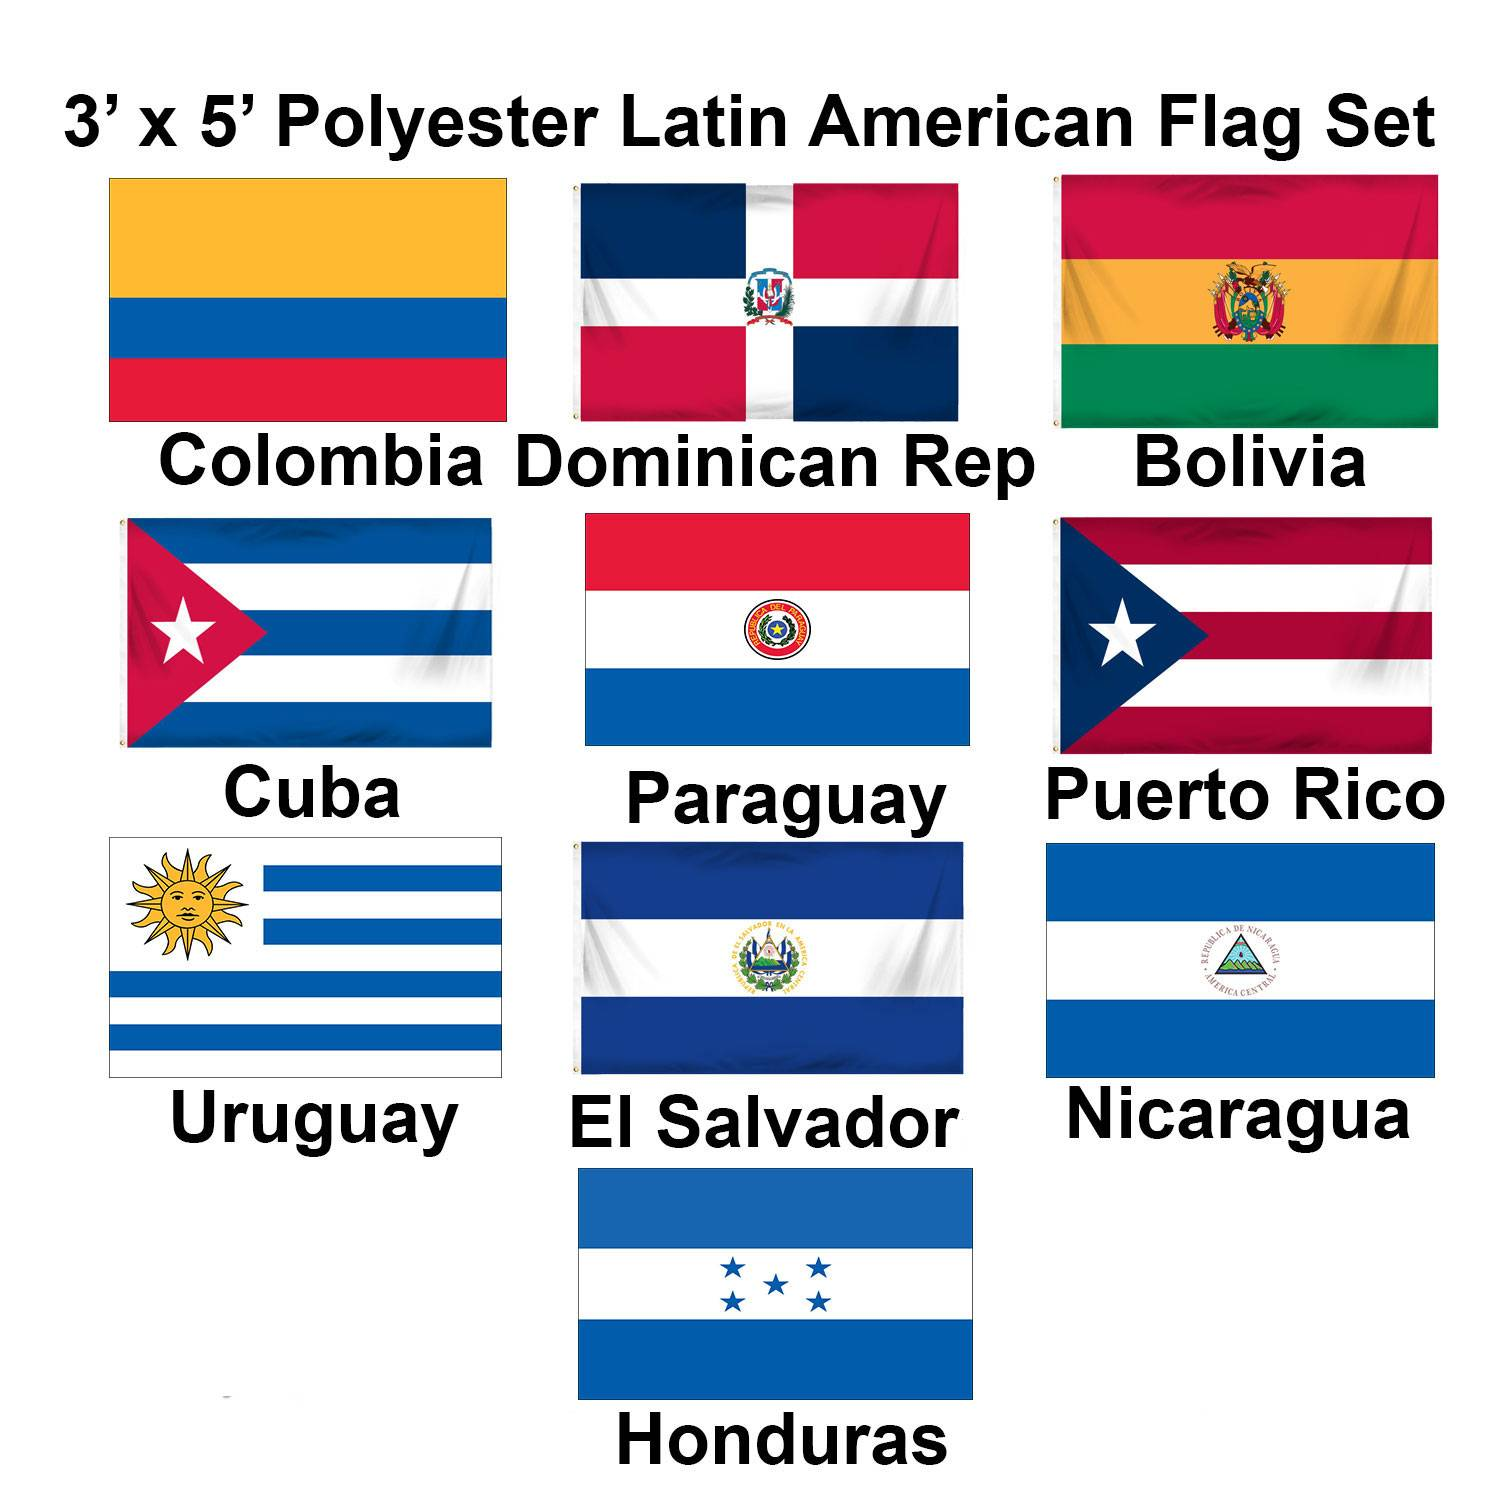 Latin American Polyester Flags